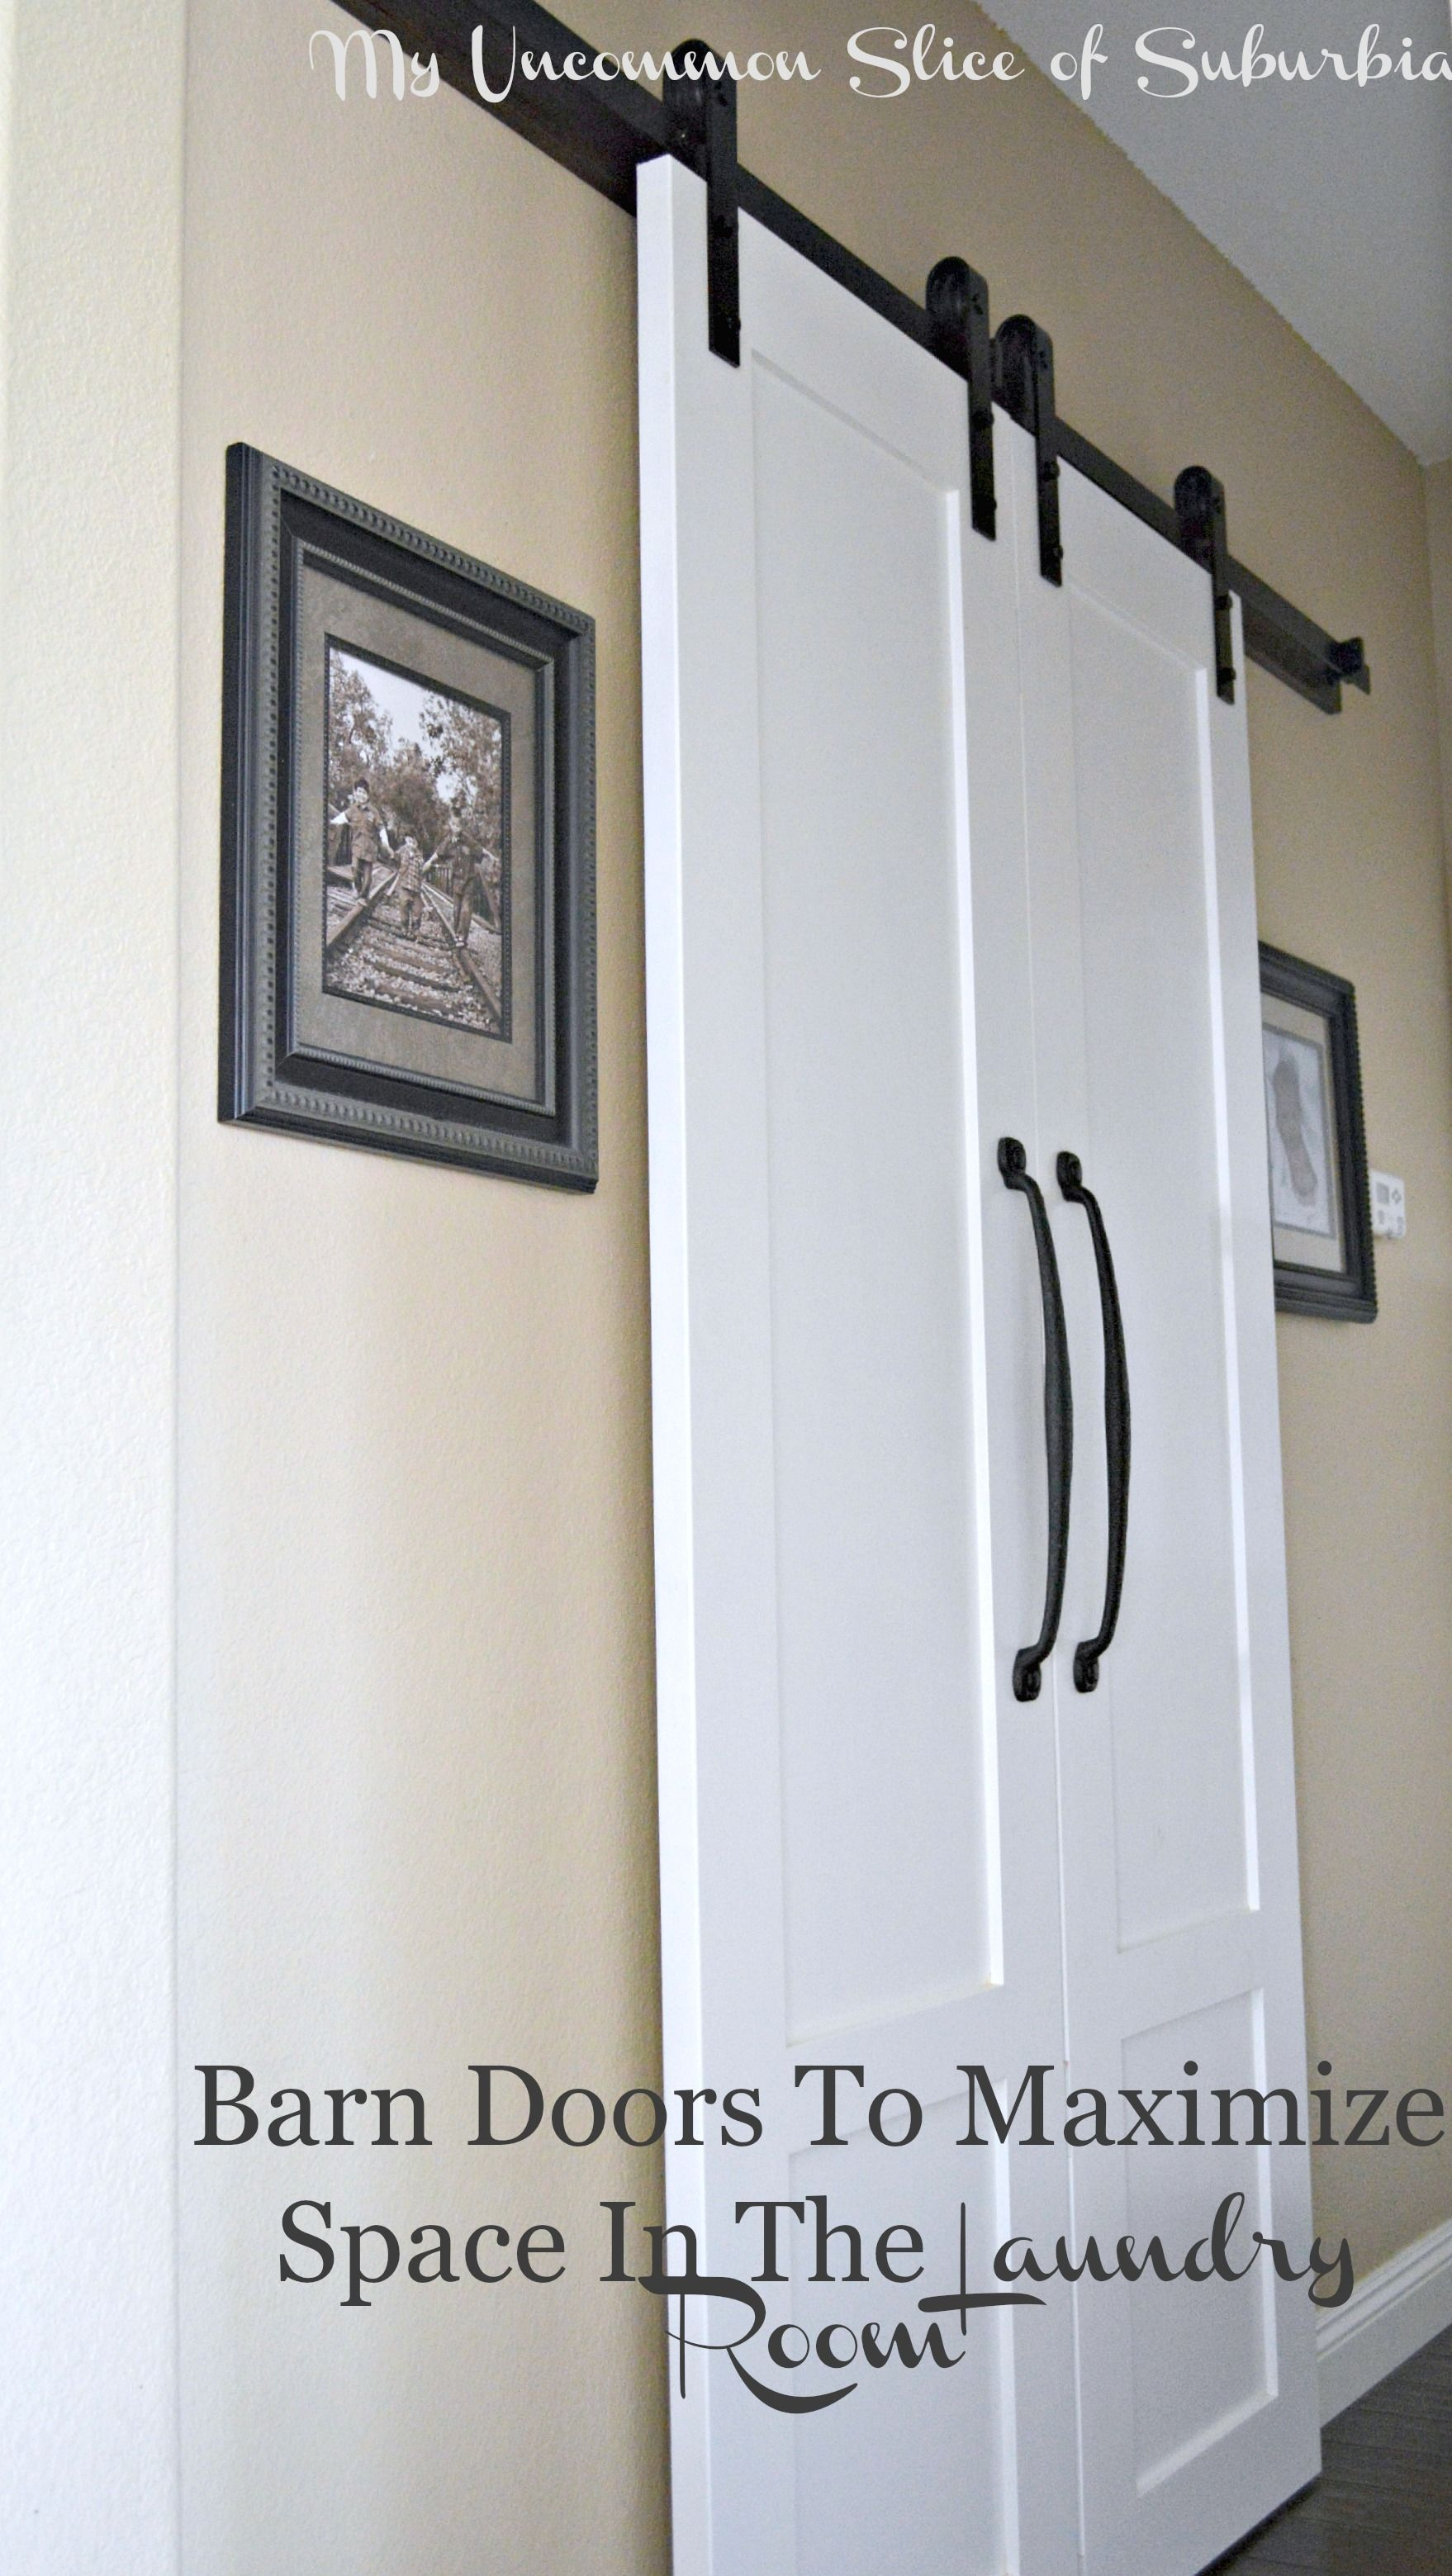 Barn Doors For The Laundry Room Barn Doors Small Rooms